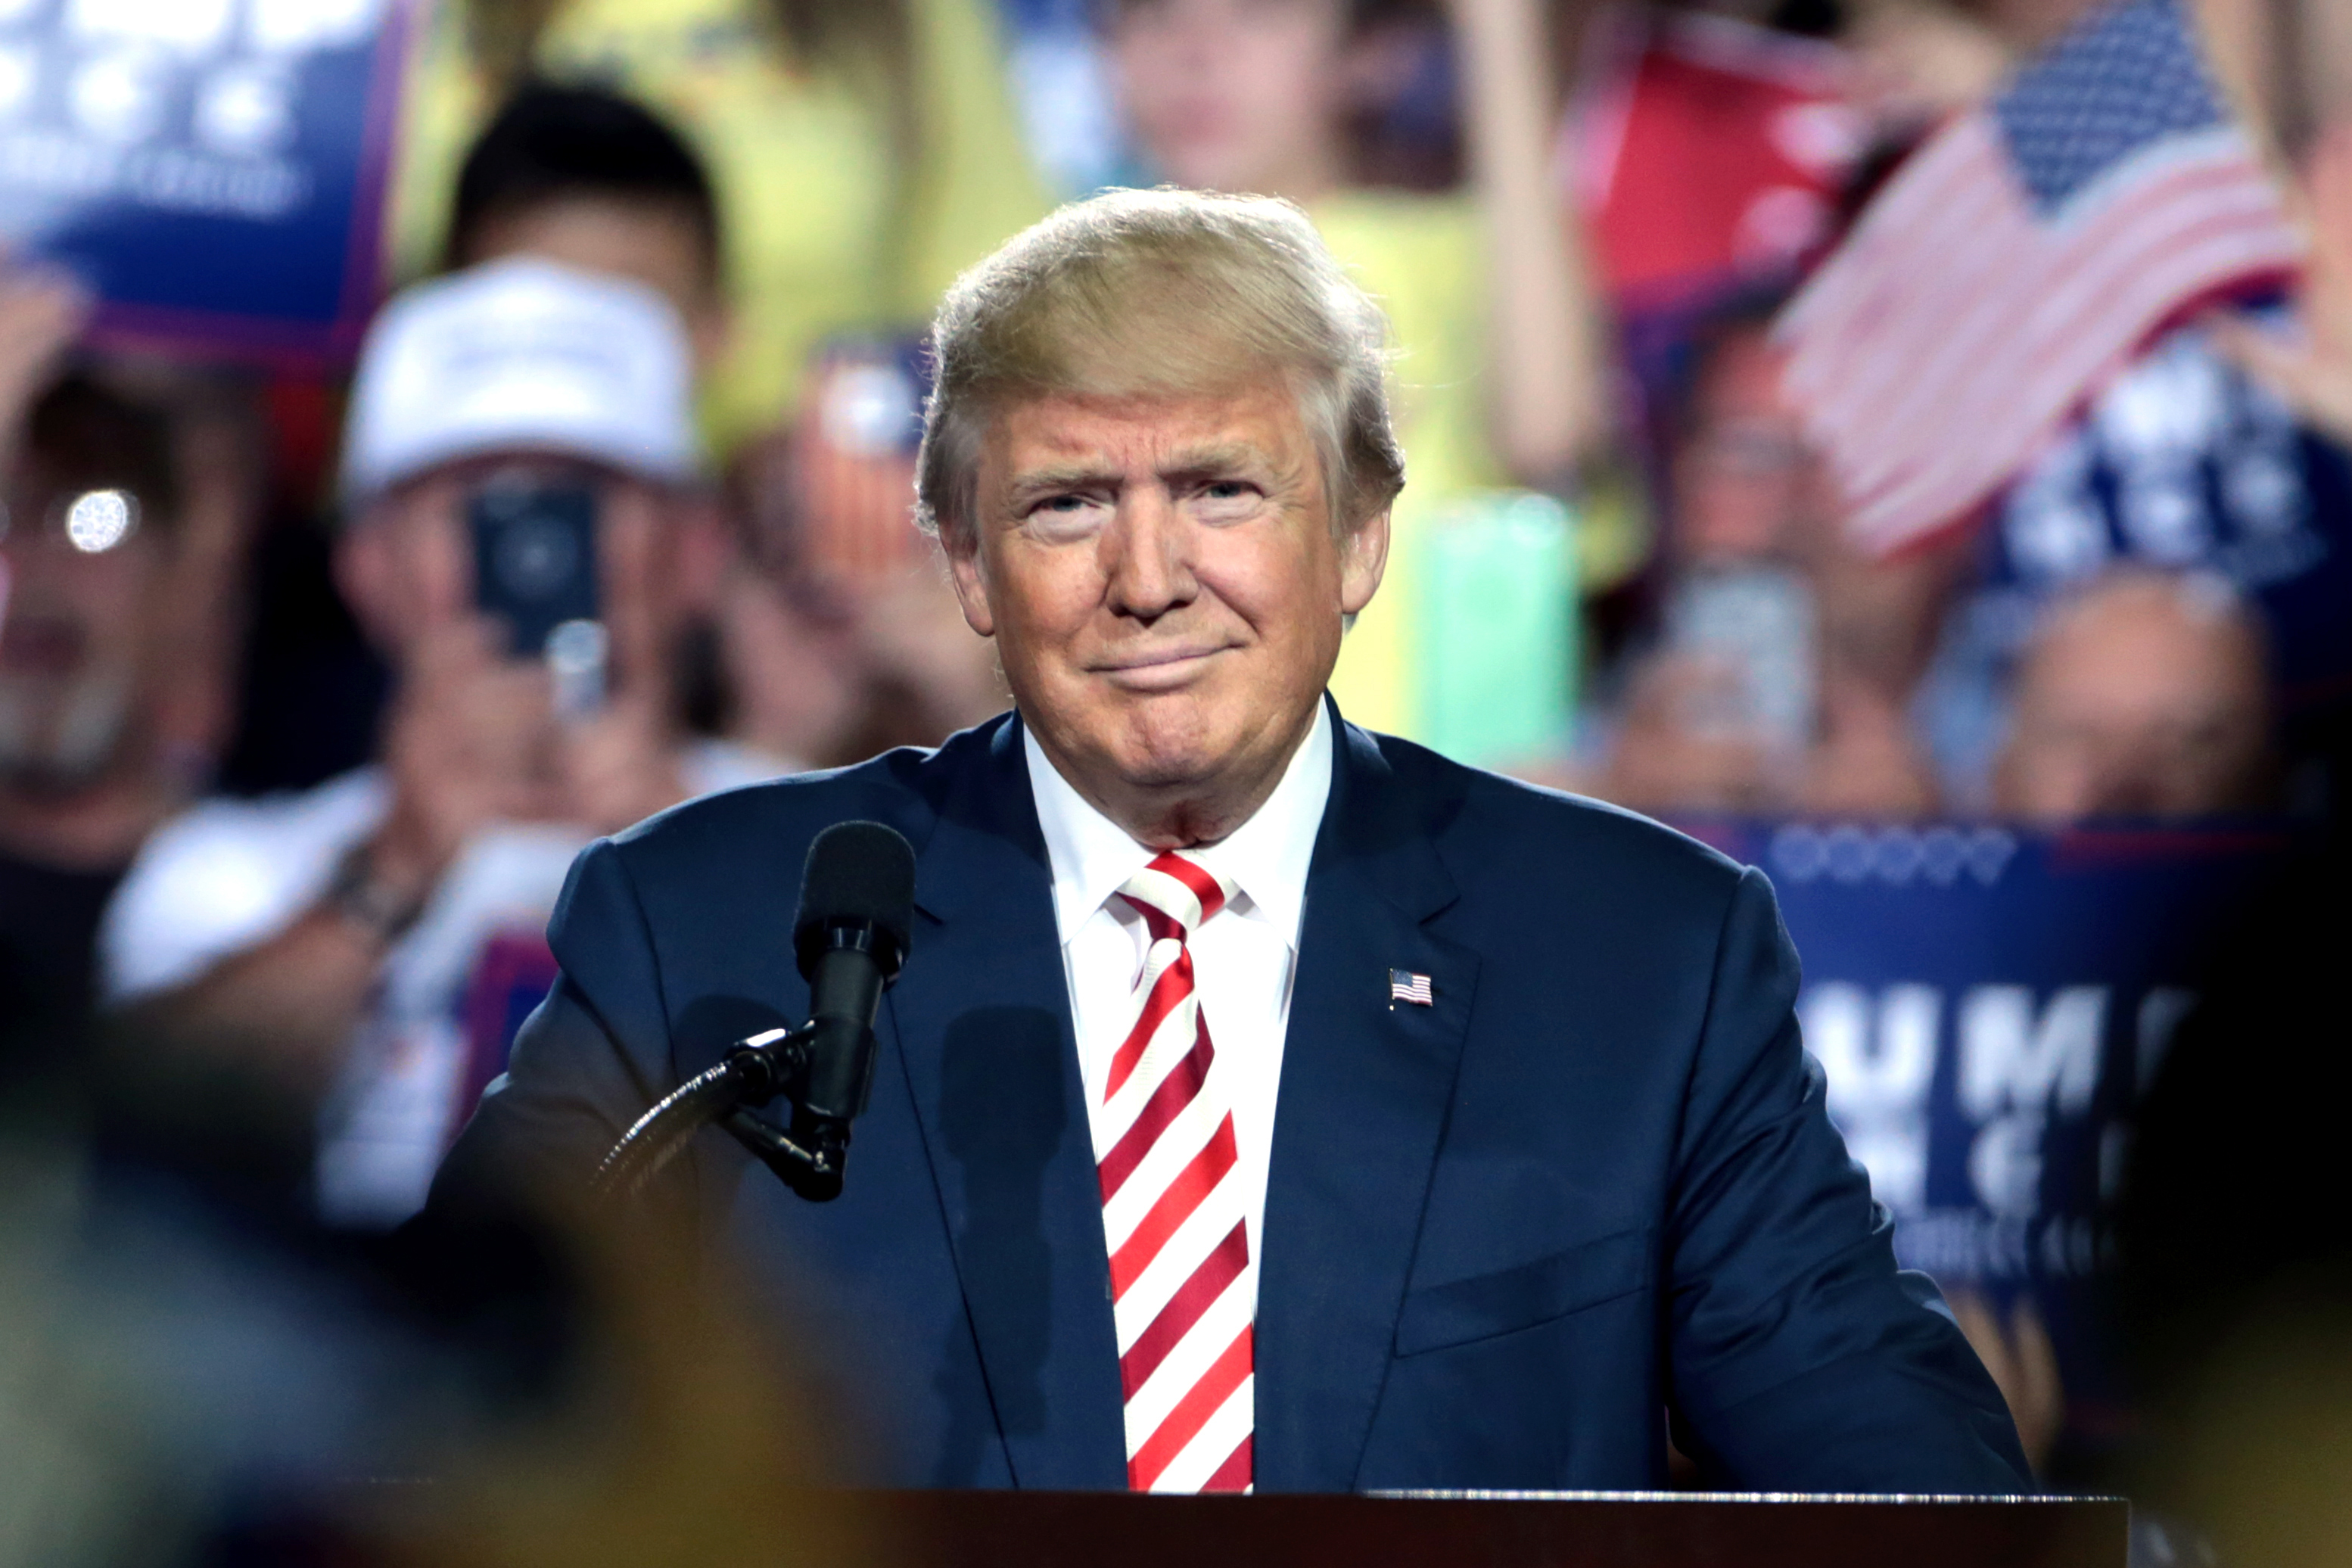 Does The Media Focus On Donald Trump's Behaviour To Stop People From Seeing The Big Picture?